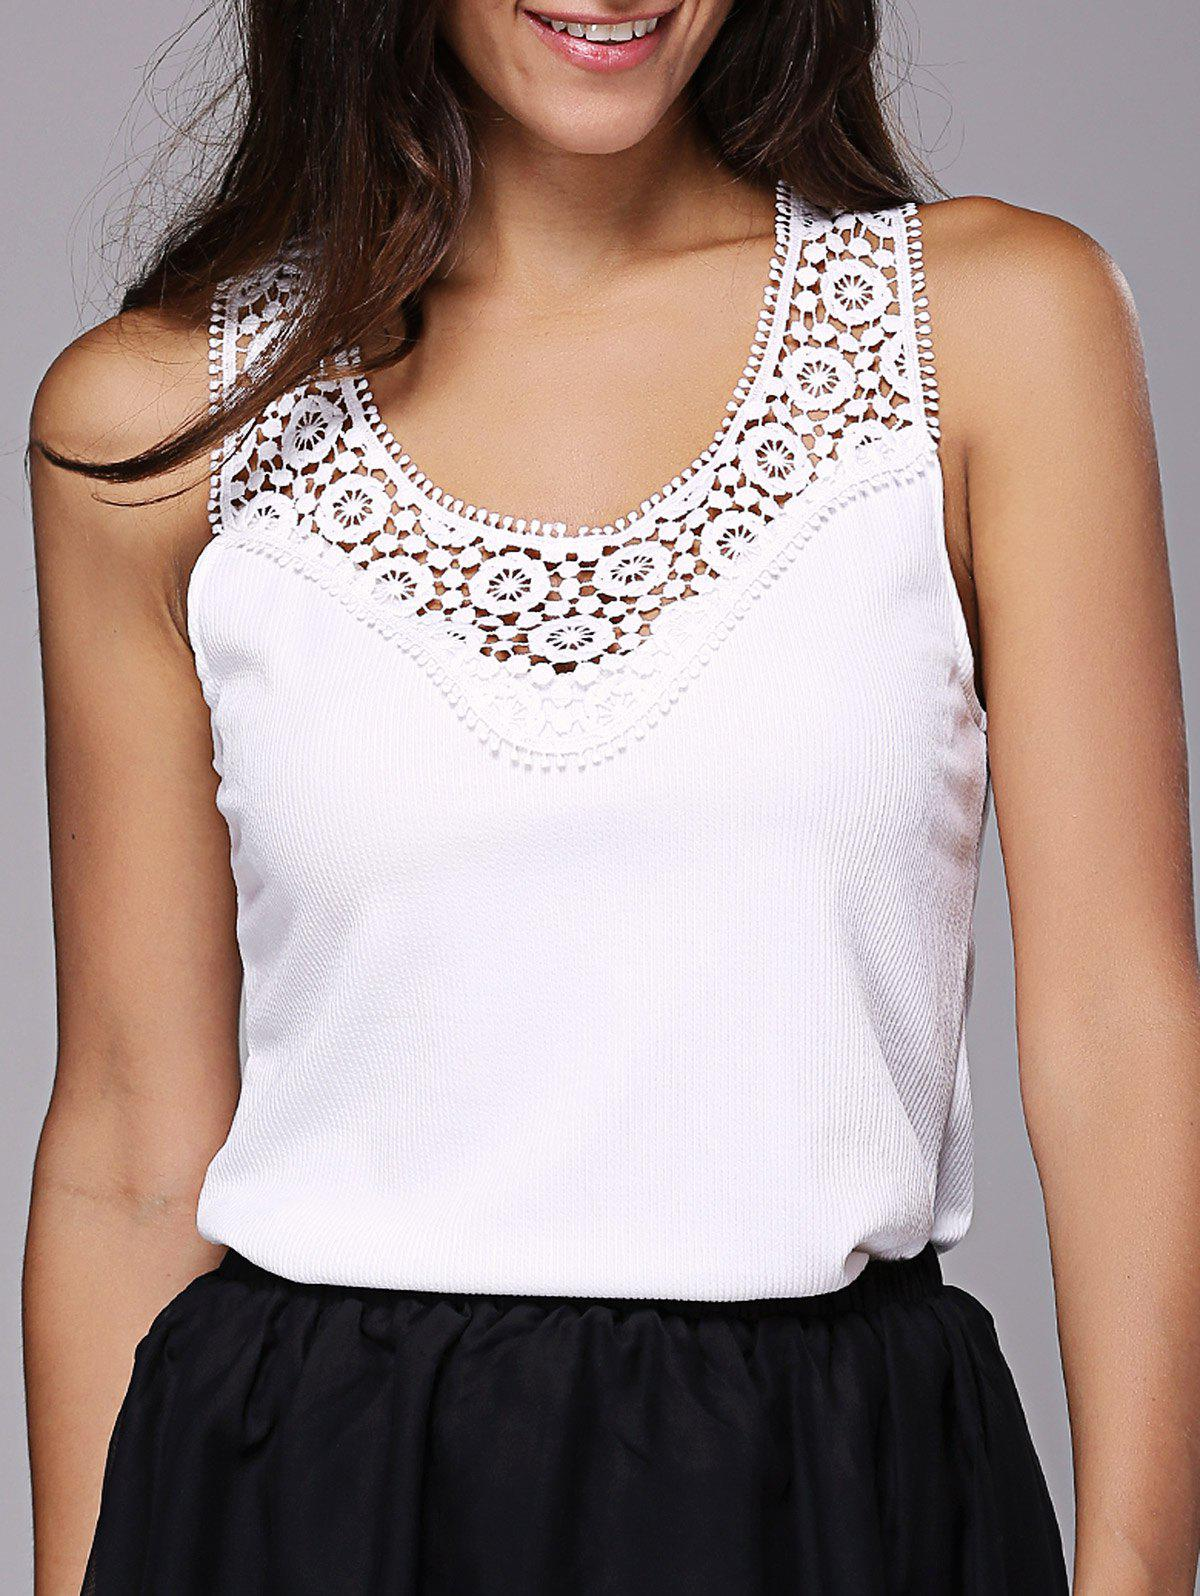 Stylish Laced  Racerback Tank Top For Women